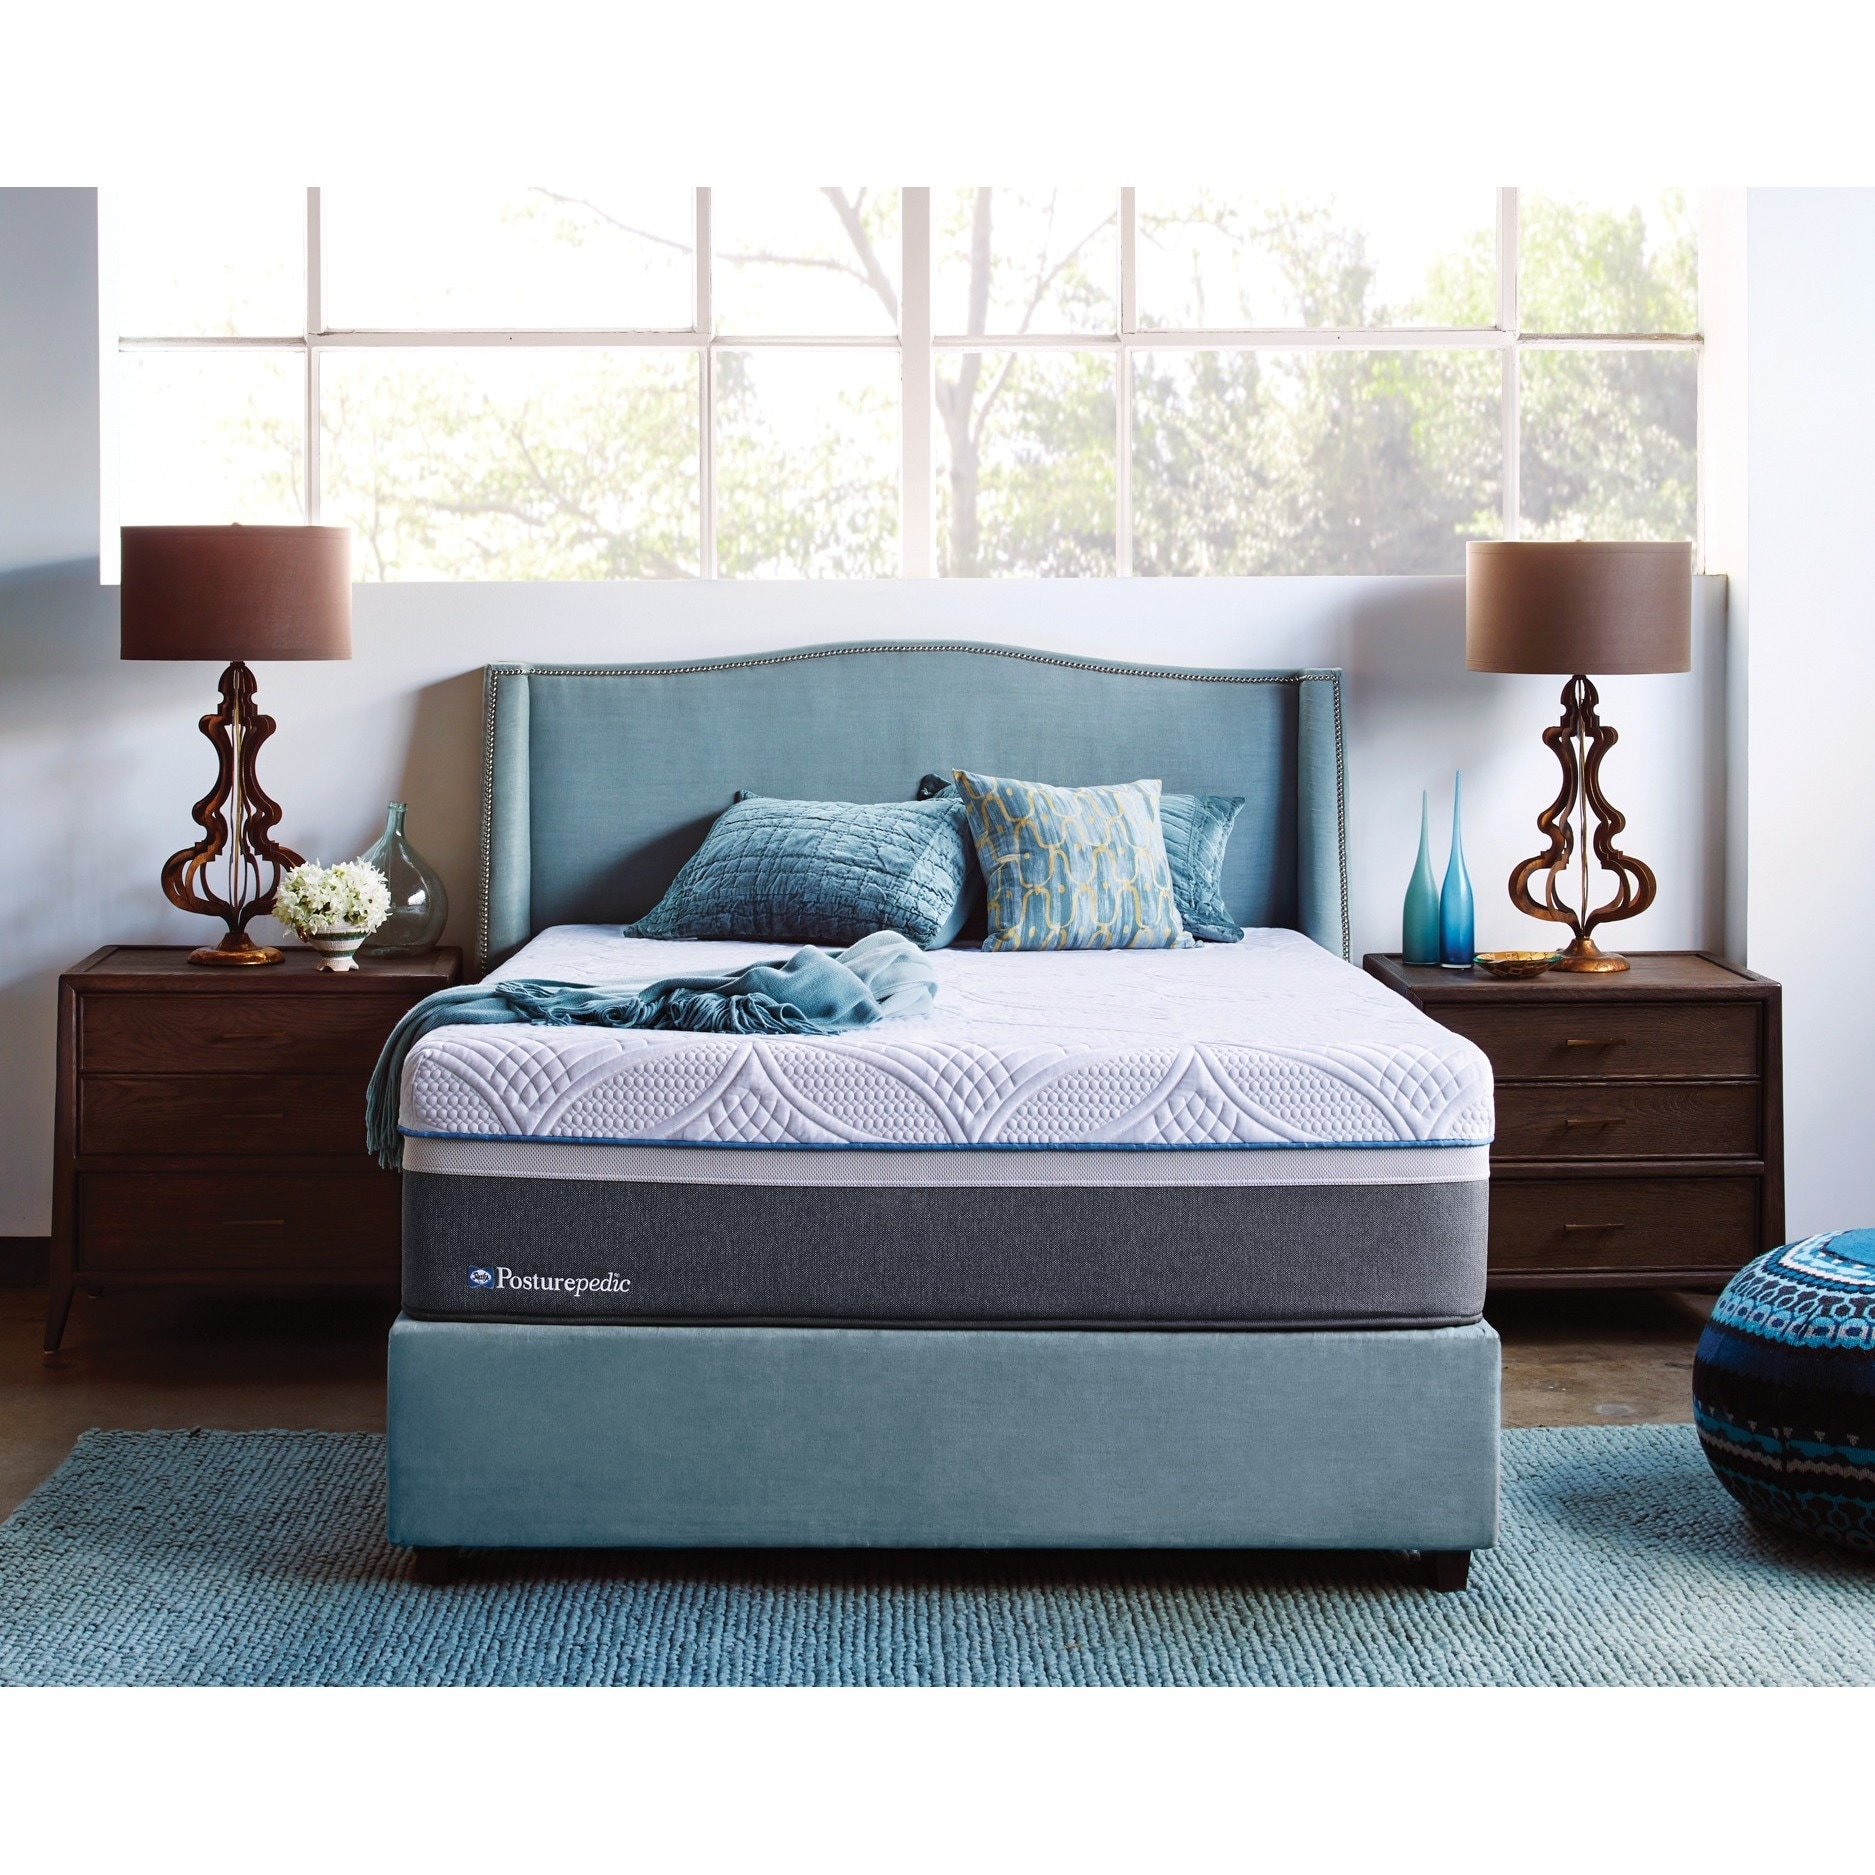 Sealy Posturepedic Hybrid Copper Plush King Size Mattress Overstock 12519483